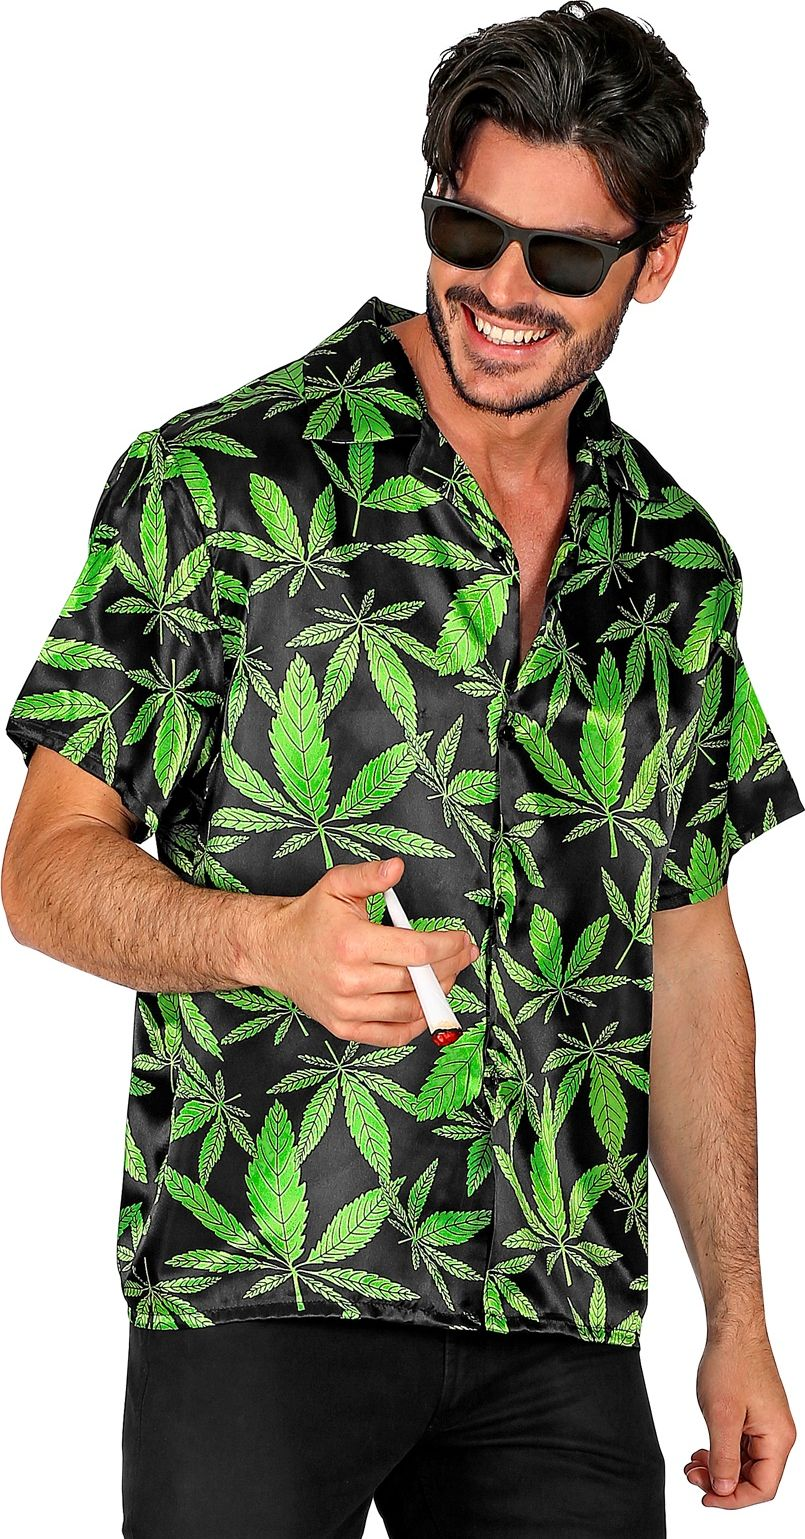 The Ganja style blouse